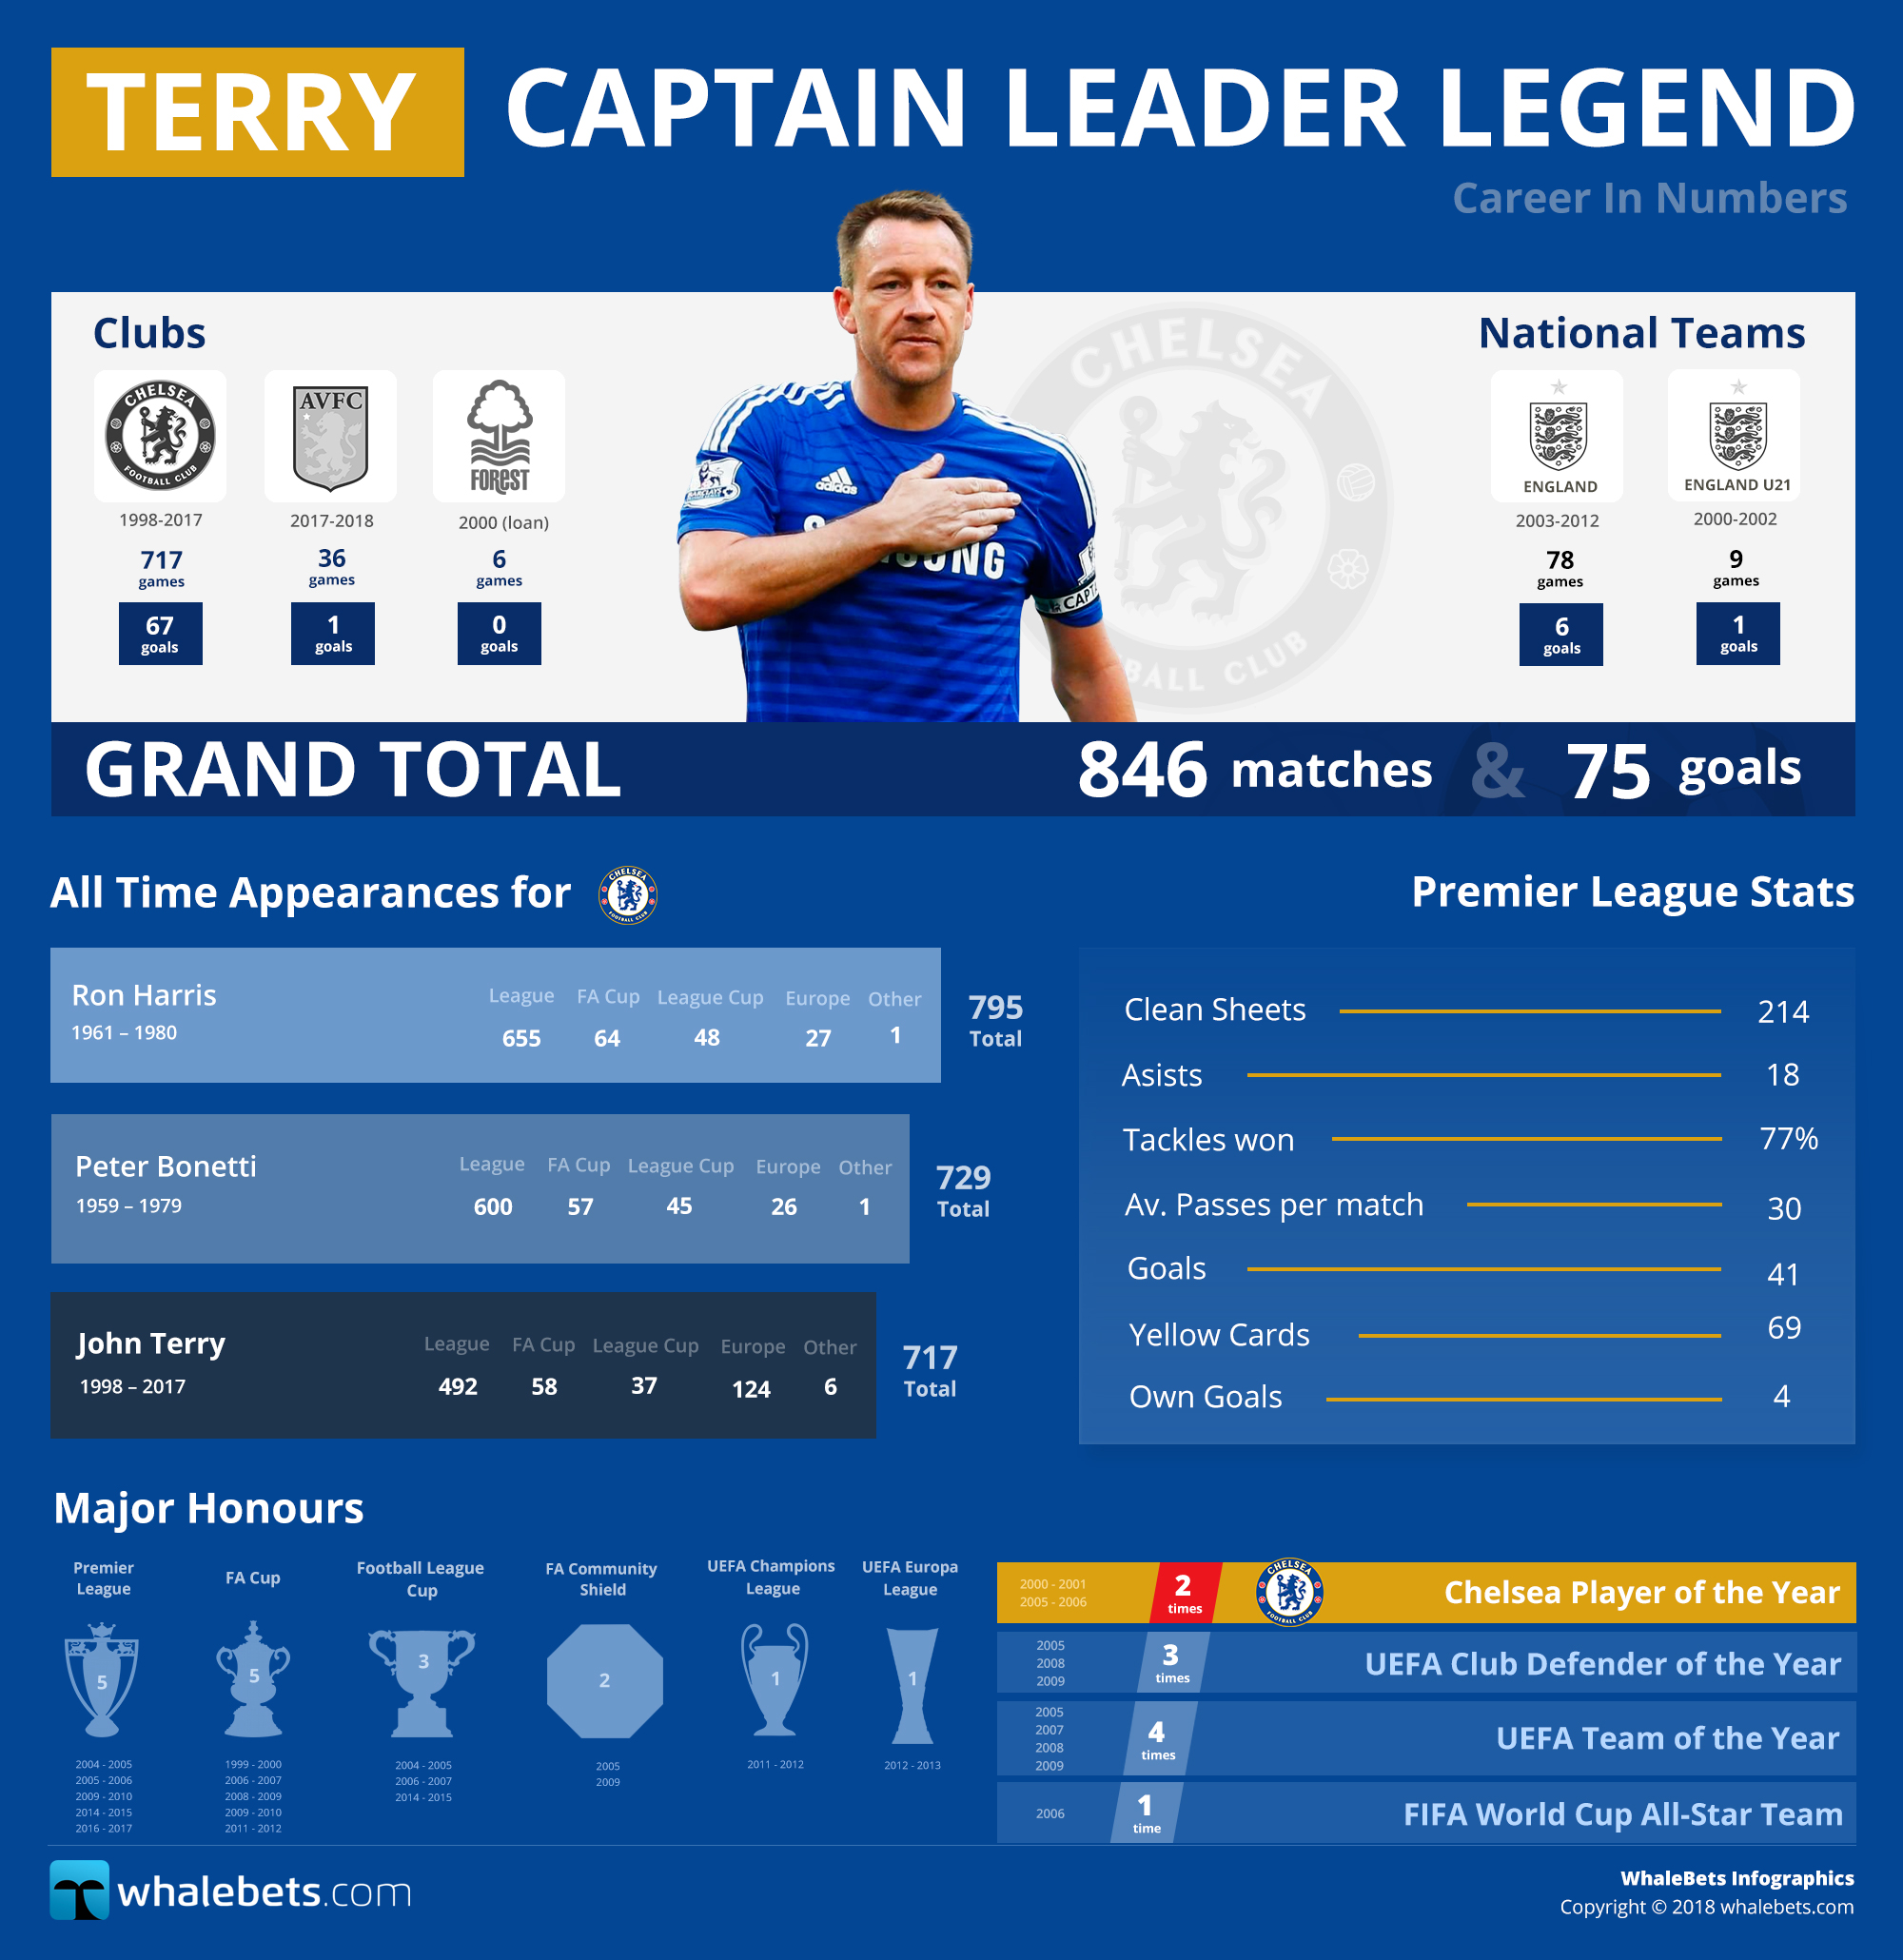 Terry - Captain Leader Legend